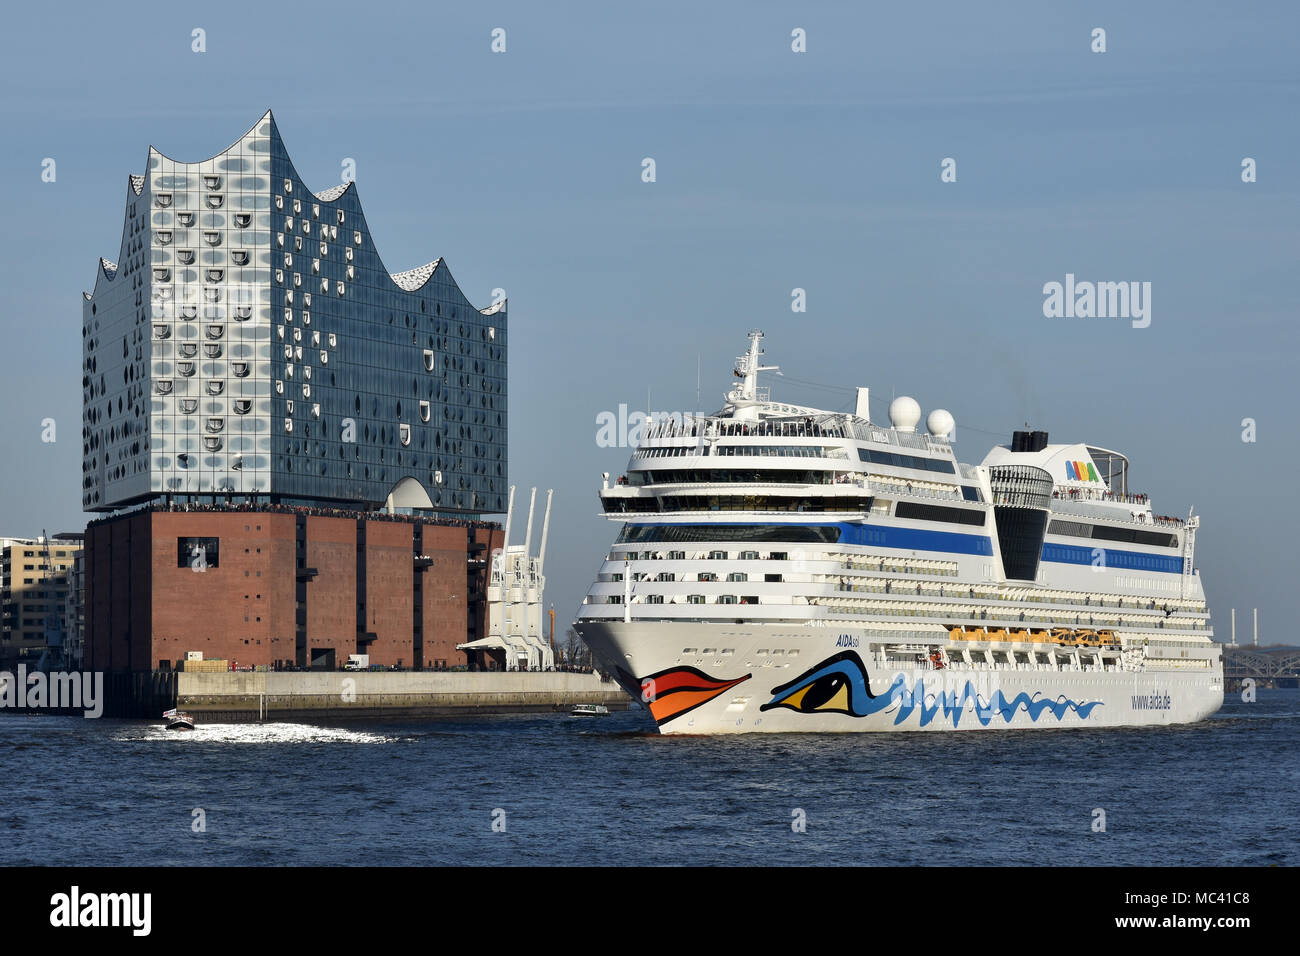 AIDAsol outbound from Hamburg passing the Elbphilharmonie concert hallStock Photo